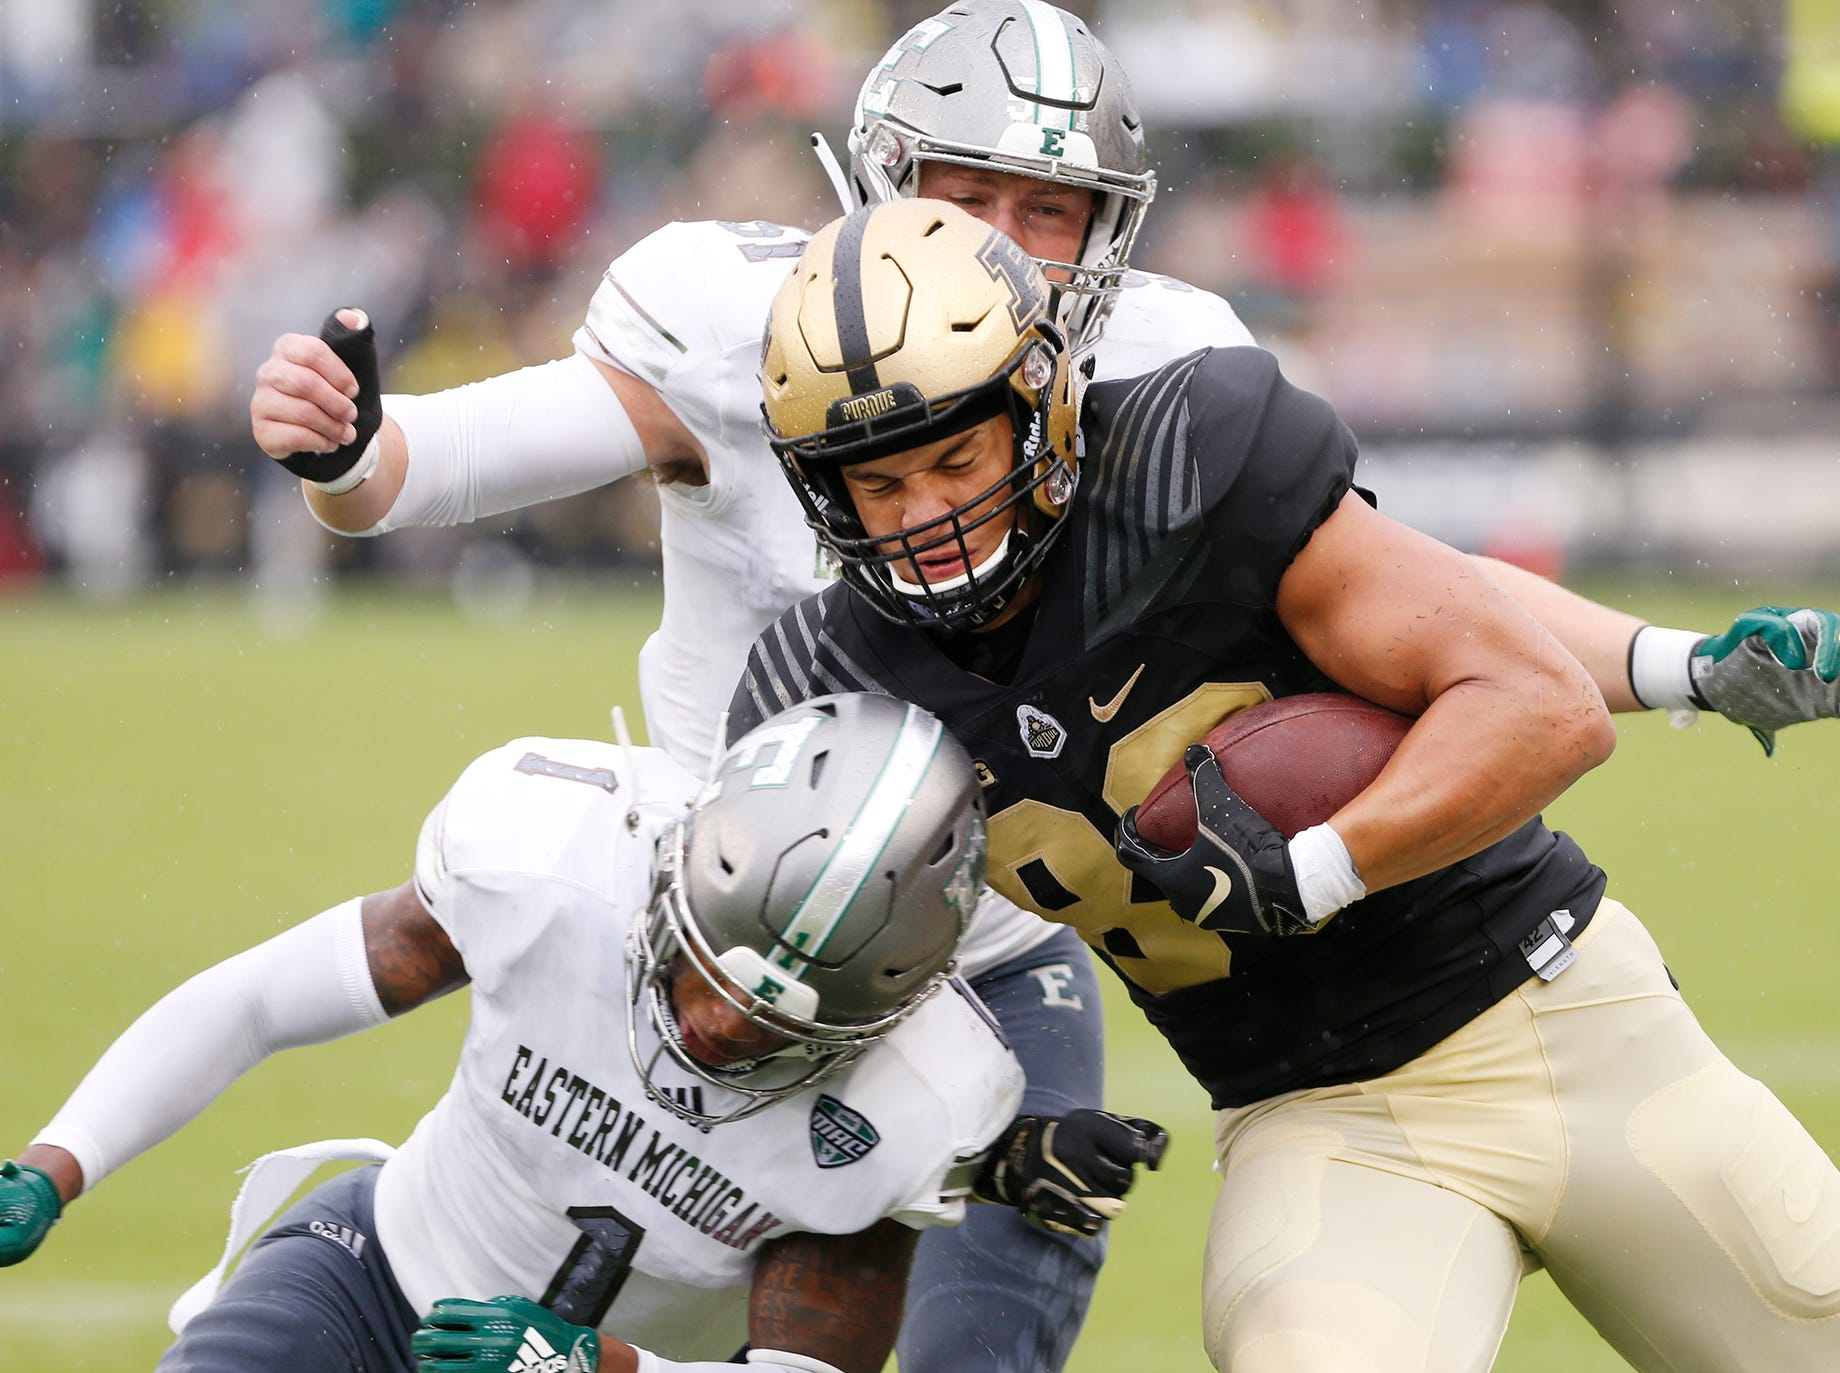 Purdue tight end Brycen Hopkins is brought down by Jalen Phelps and Kyle Rachwal of Eastern Michigan after a pass reception in the first half Saturday, September 8, 2018, in West Lafayette. Purdue fell to Eastern Michigan 20-19.